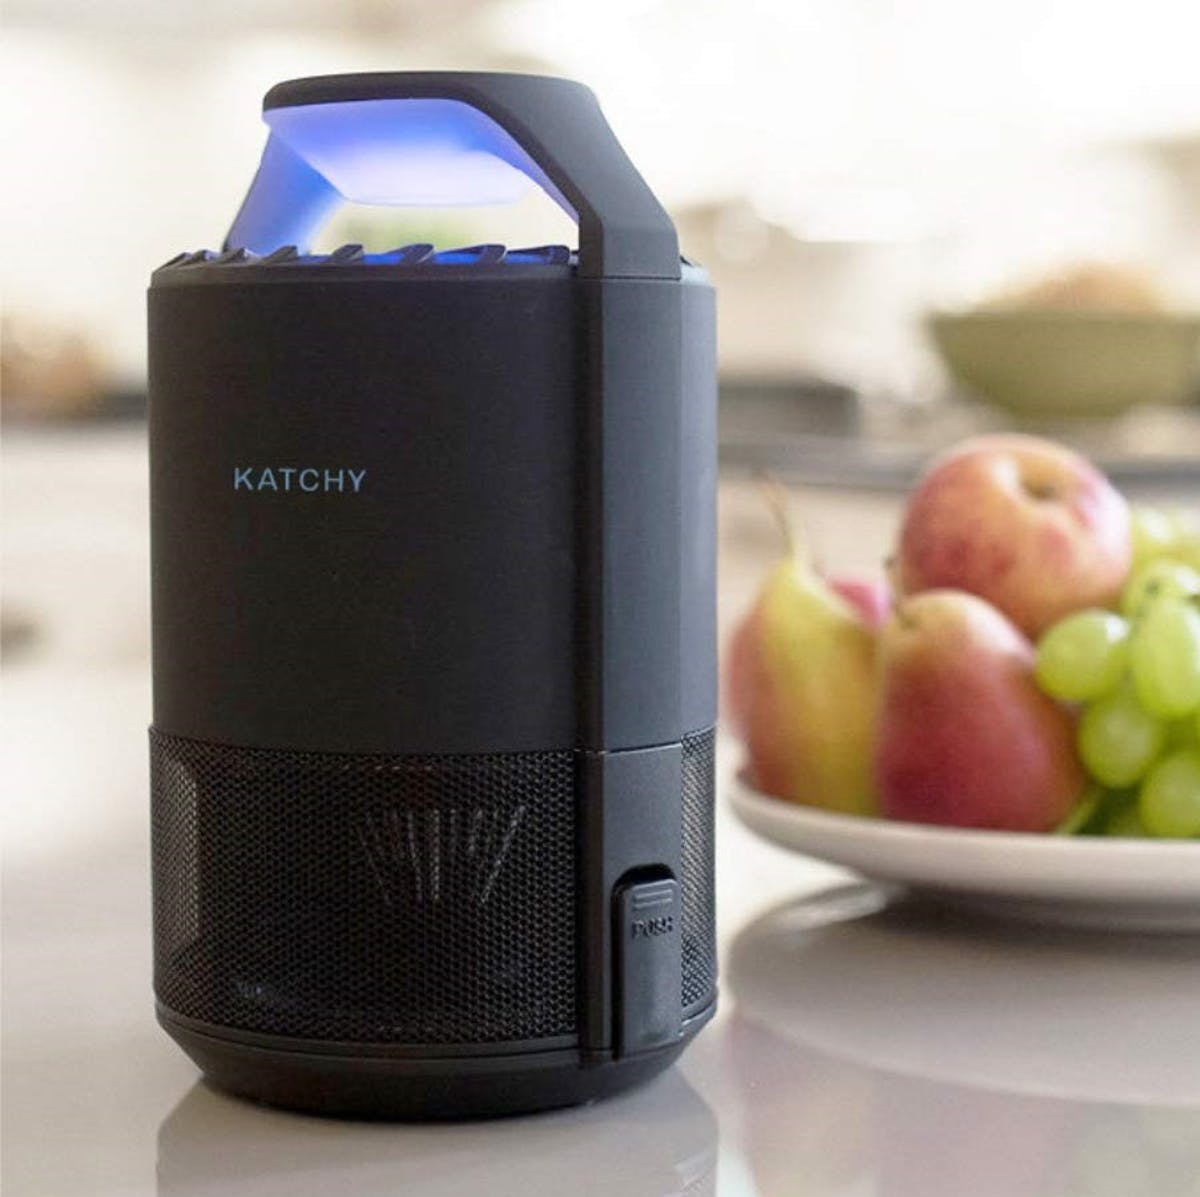 The KATCHY Insect Trap Rids Your Home of Bugs Without Using Pesticides